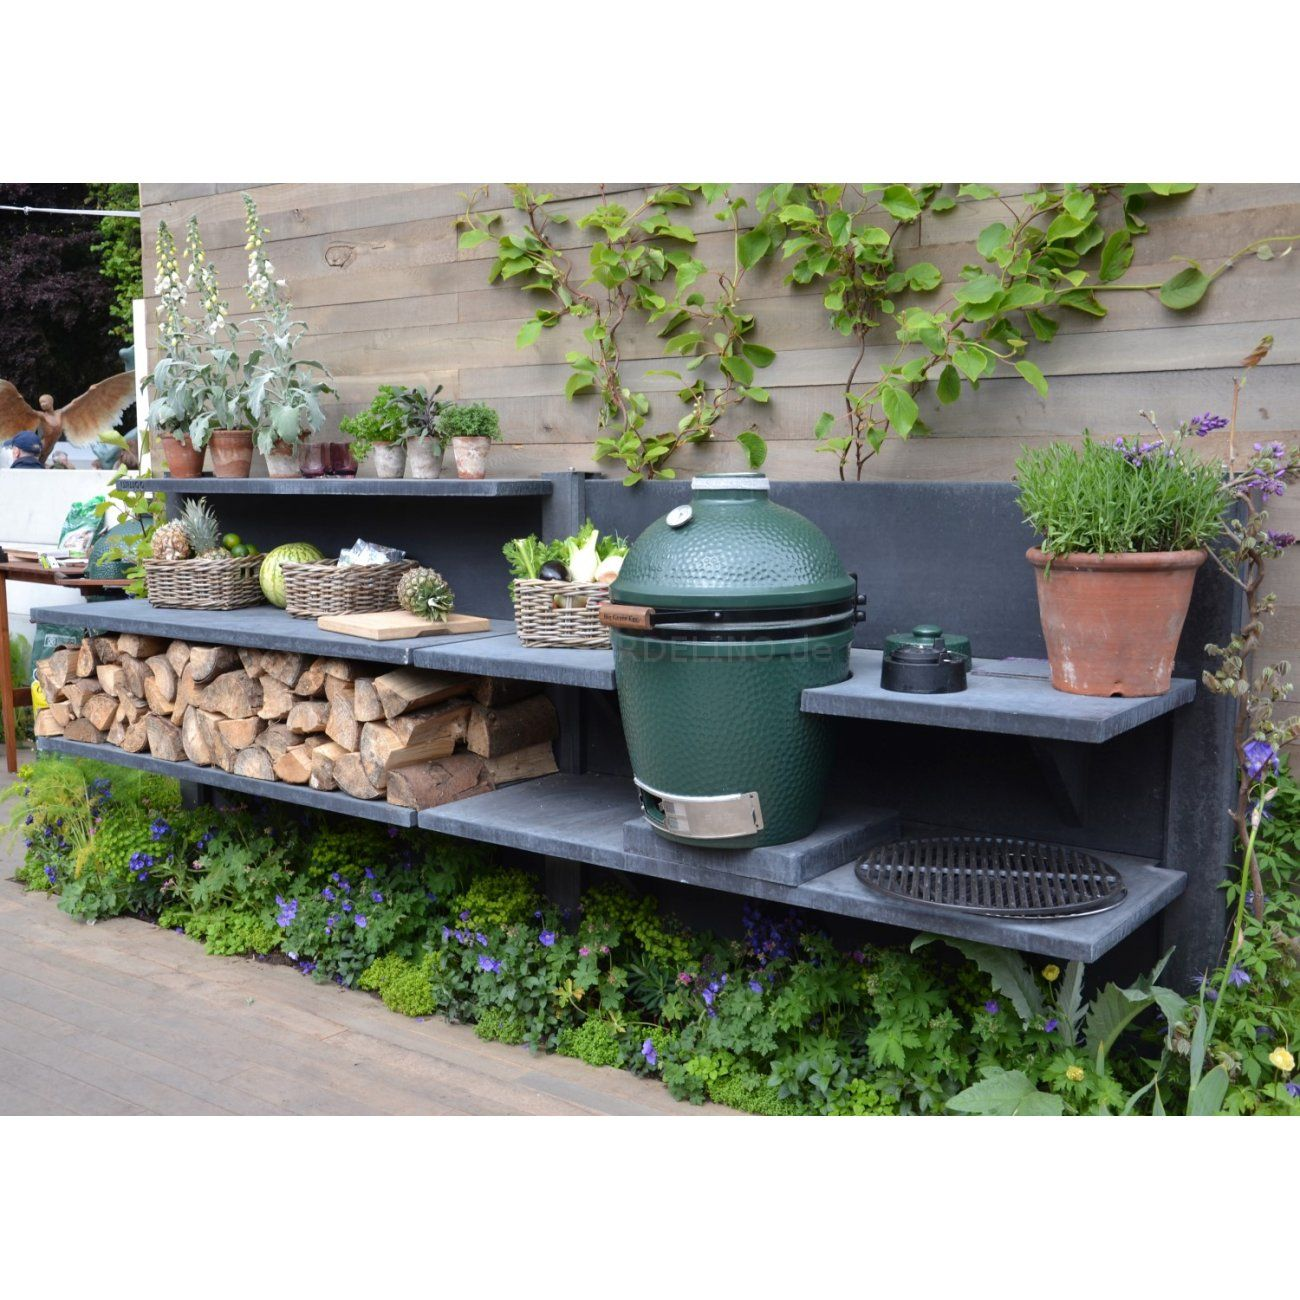 Kitstrip Keuken Outdoor Küche Pinterest Diy Outdoor Kitchen On A Budget